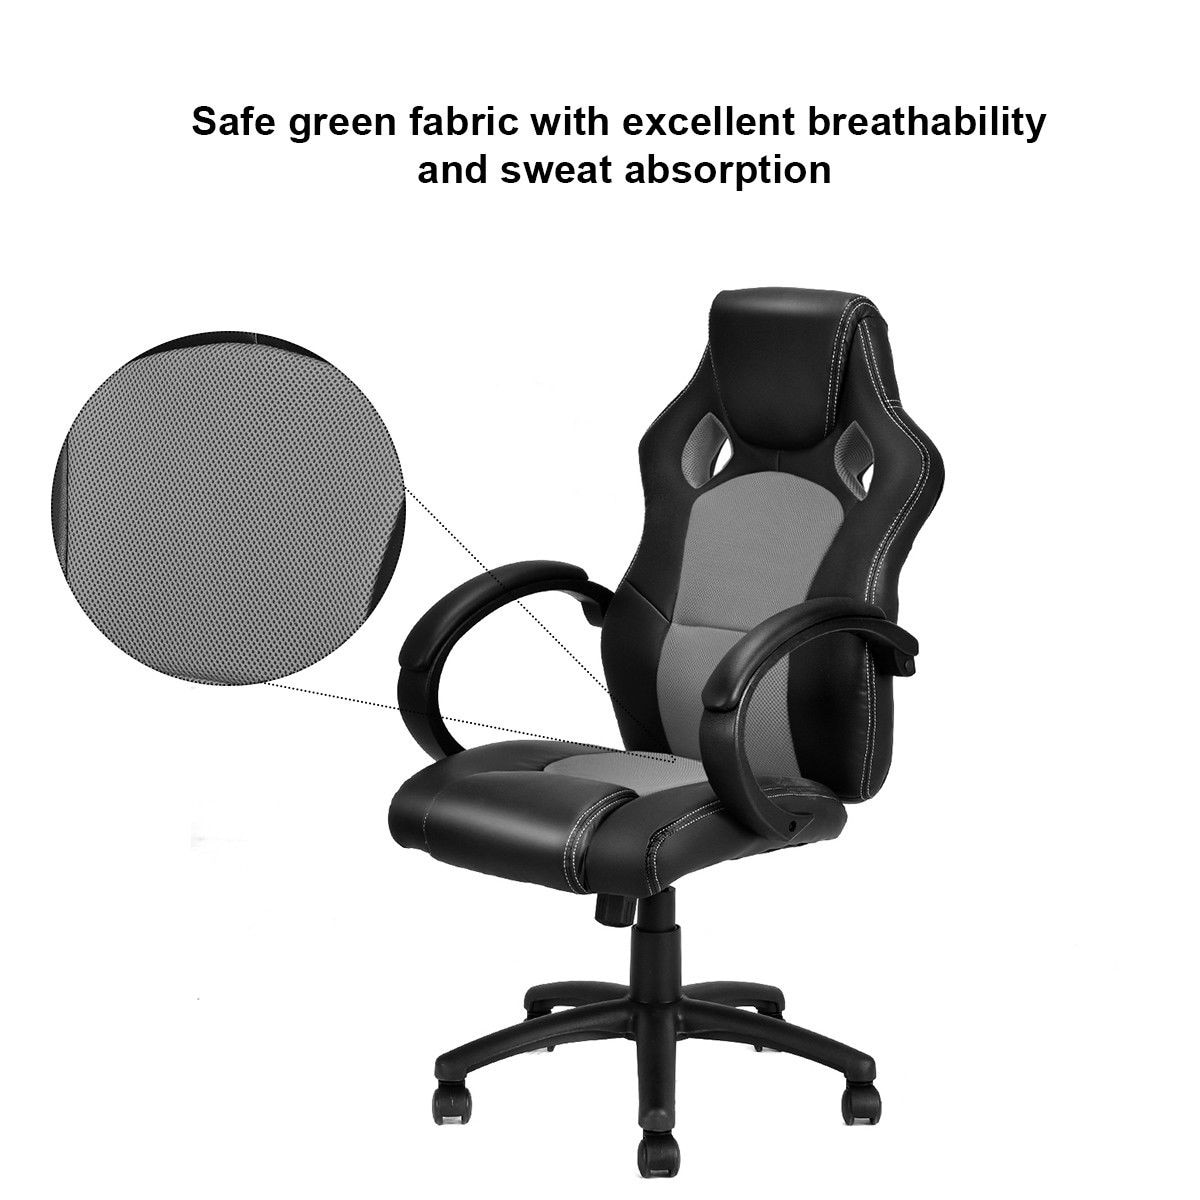 Racing Seat Office Chair Costway High Back Race Car Style Bucket Seat Office Desk Chair Gaming Chair Gray